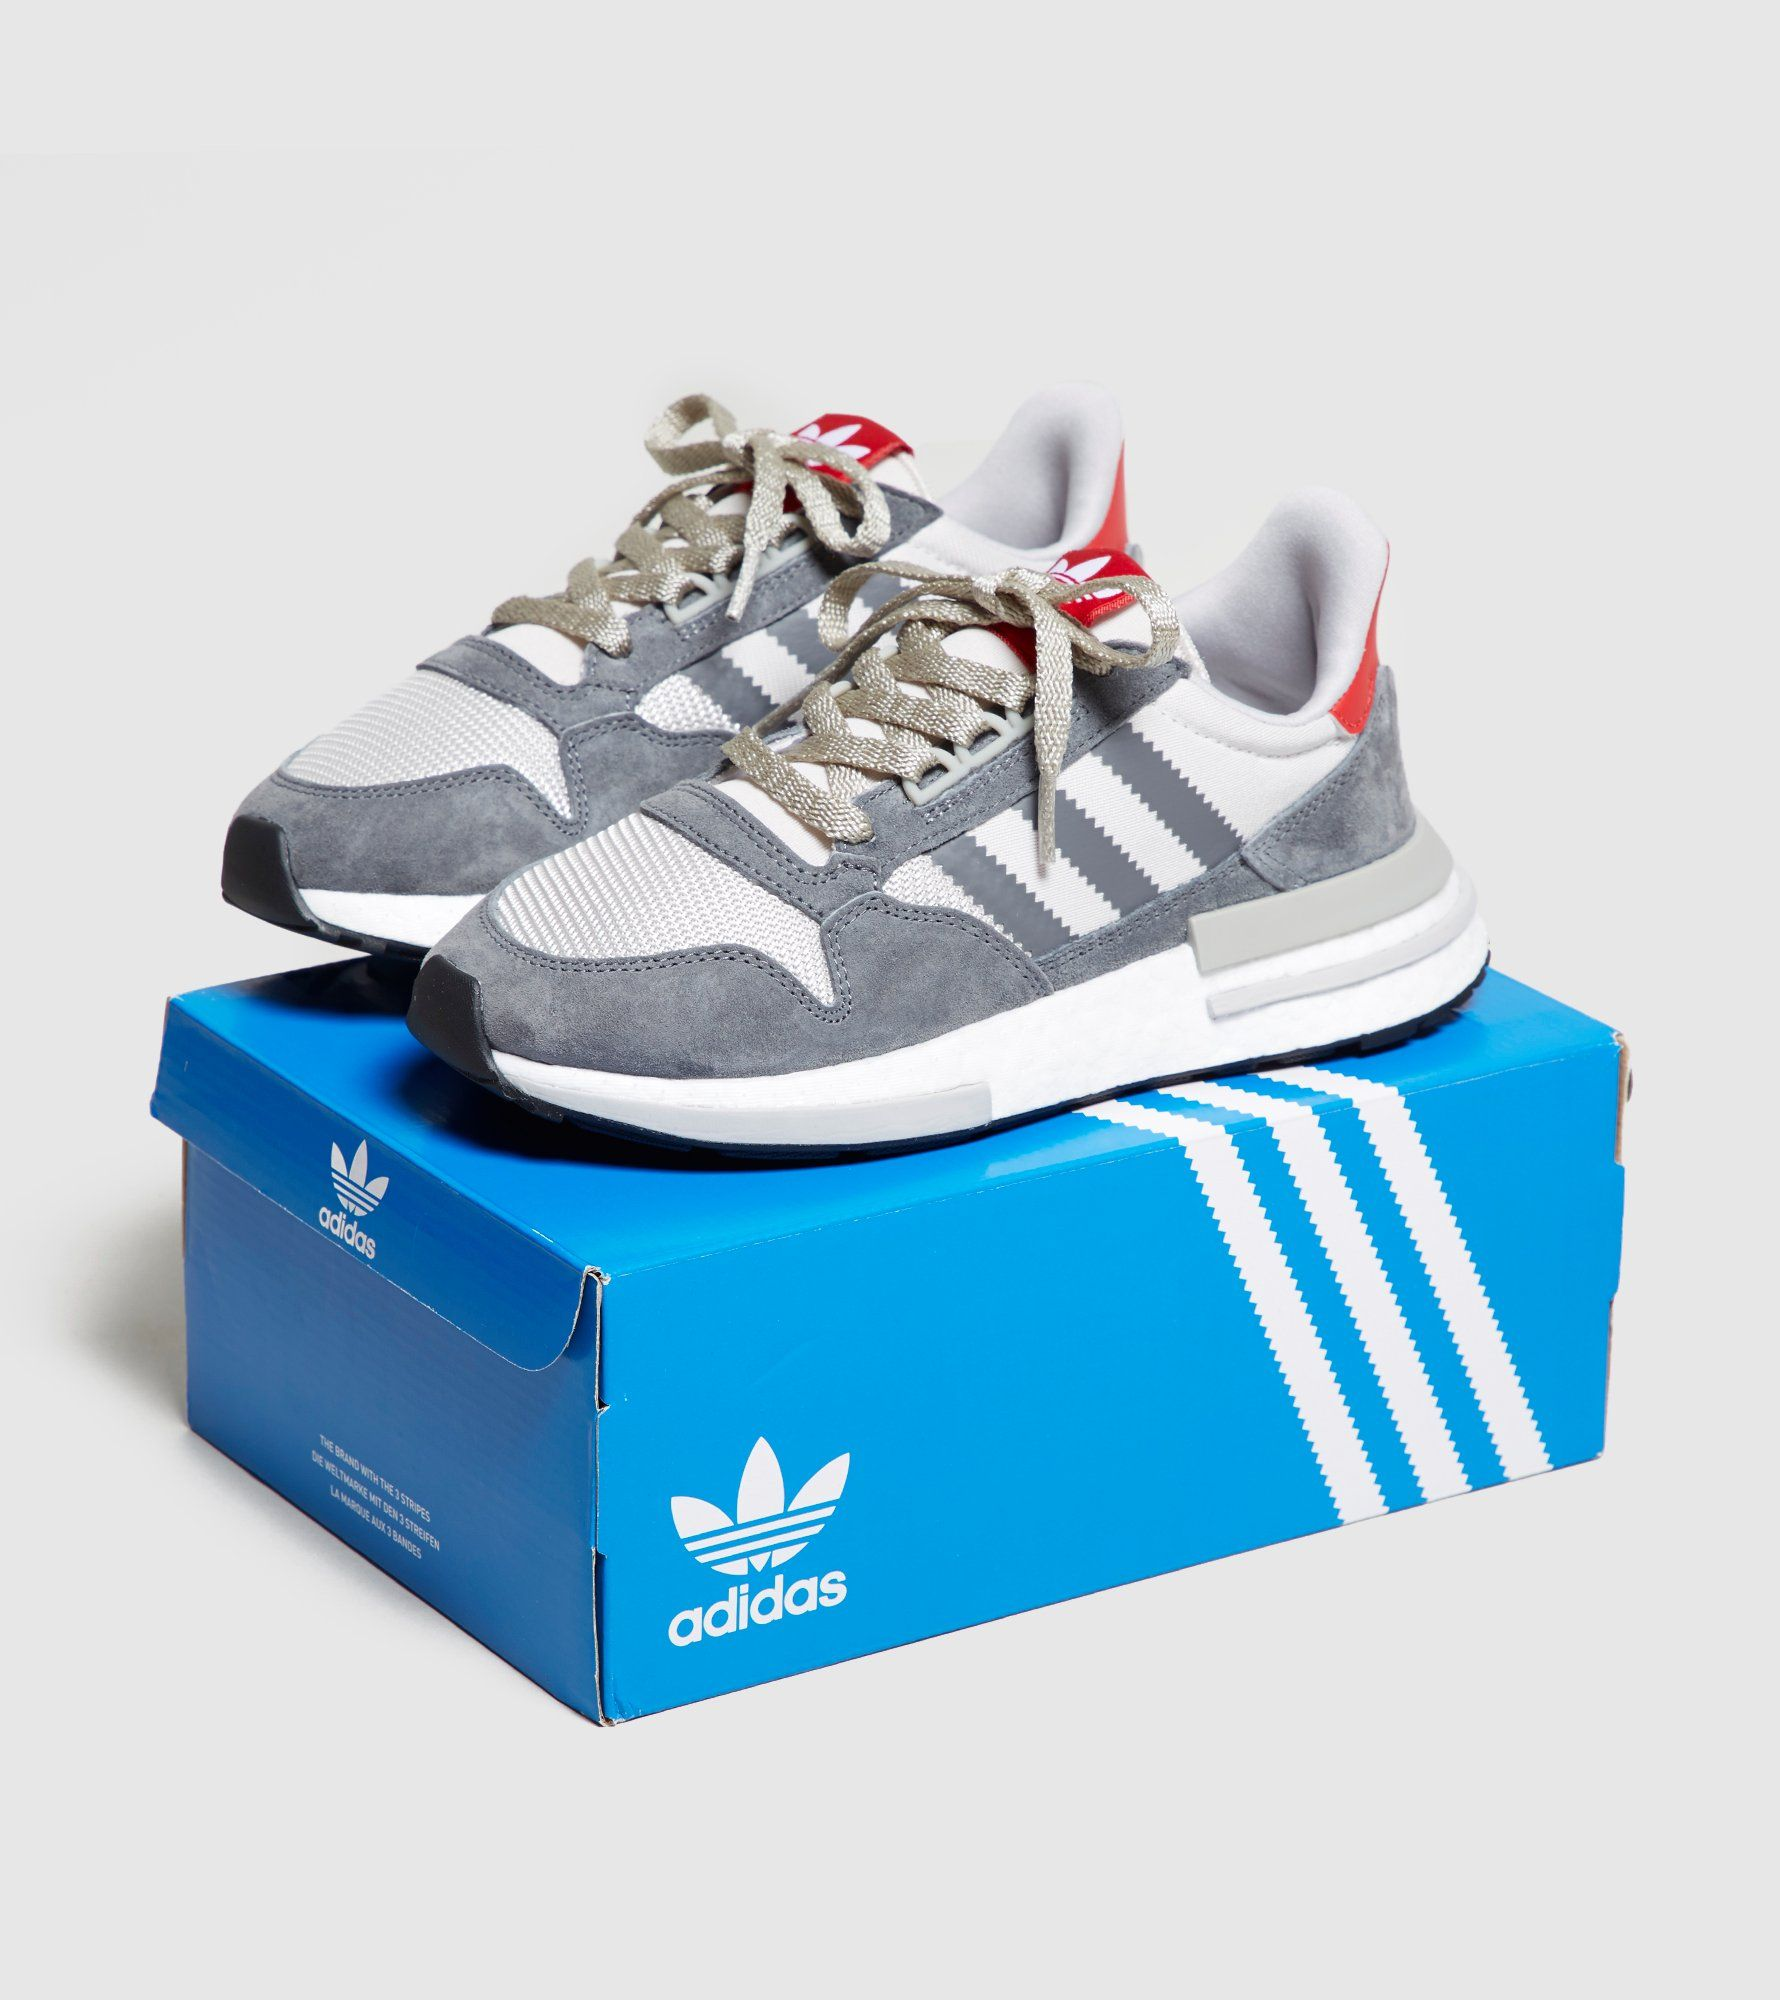 adidas Originals ZX500 OG Boost Women's